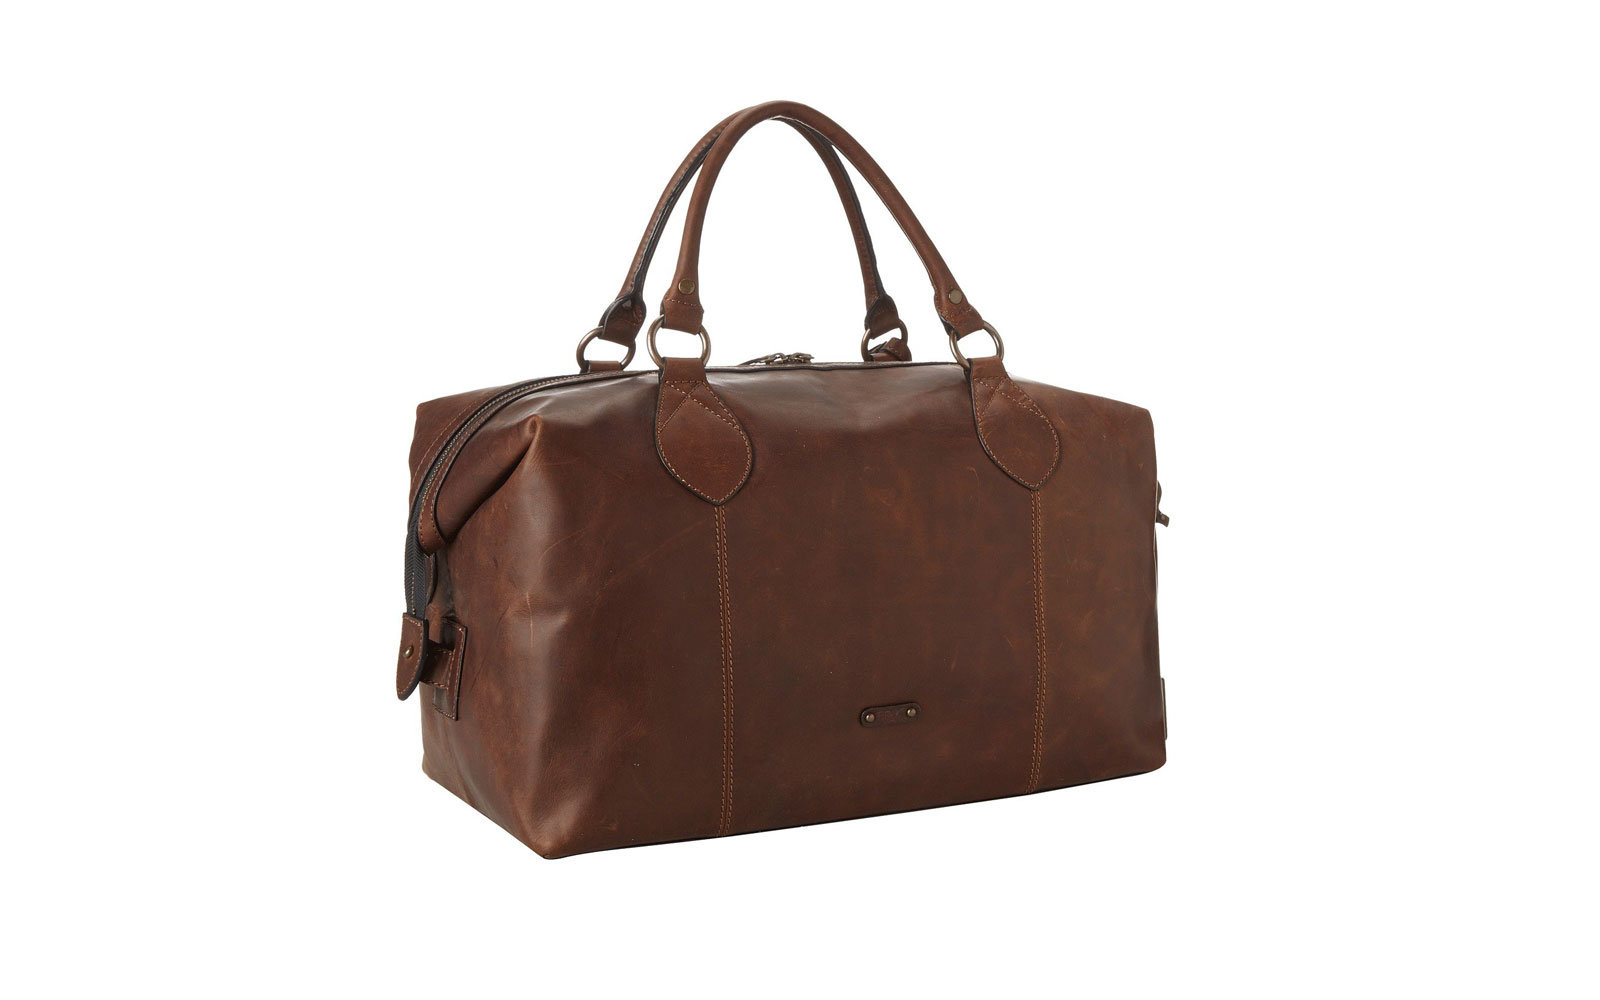 25b14d87f4b4 Frye Logan Leather Overnight Bag